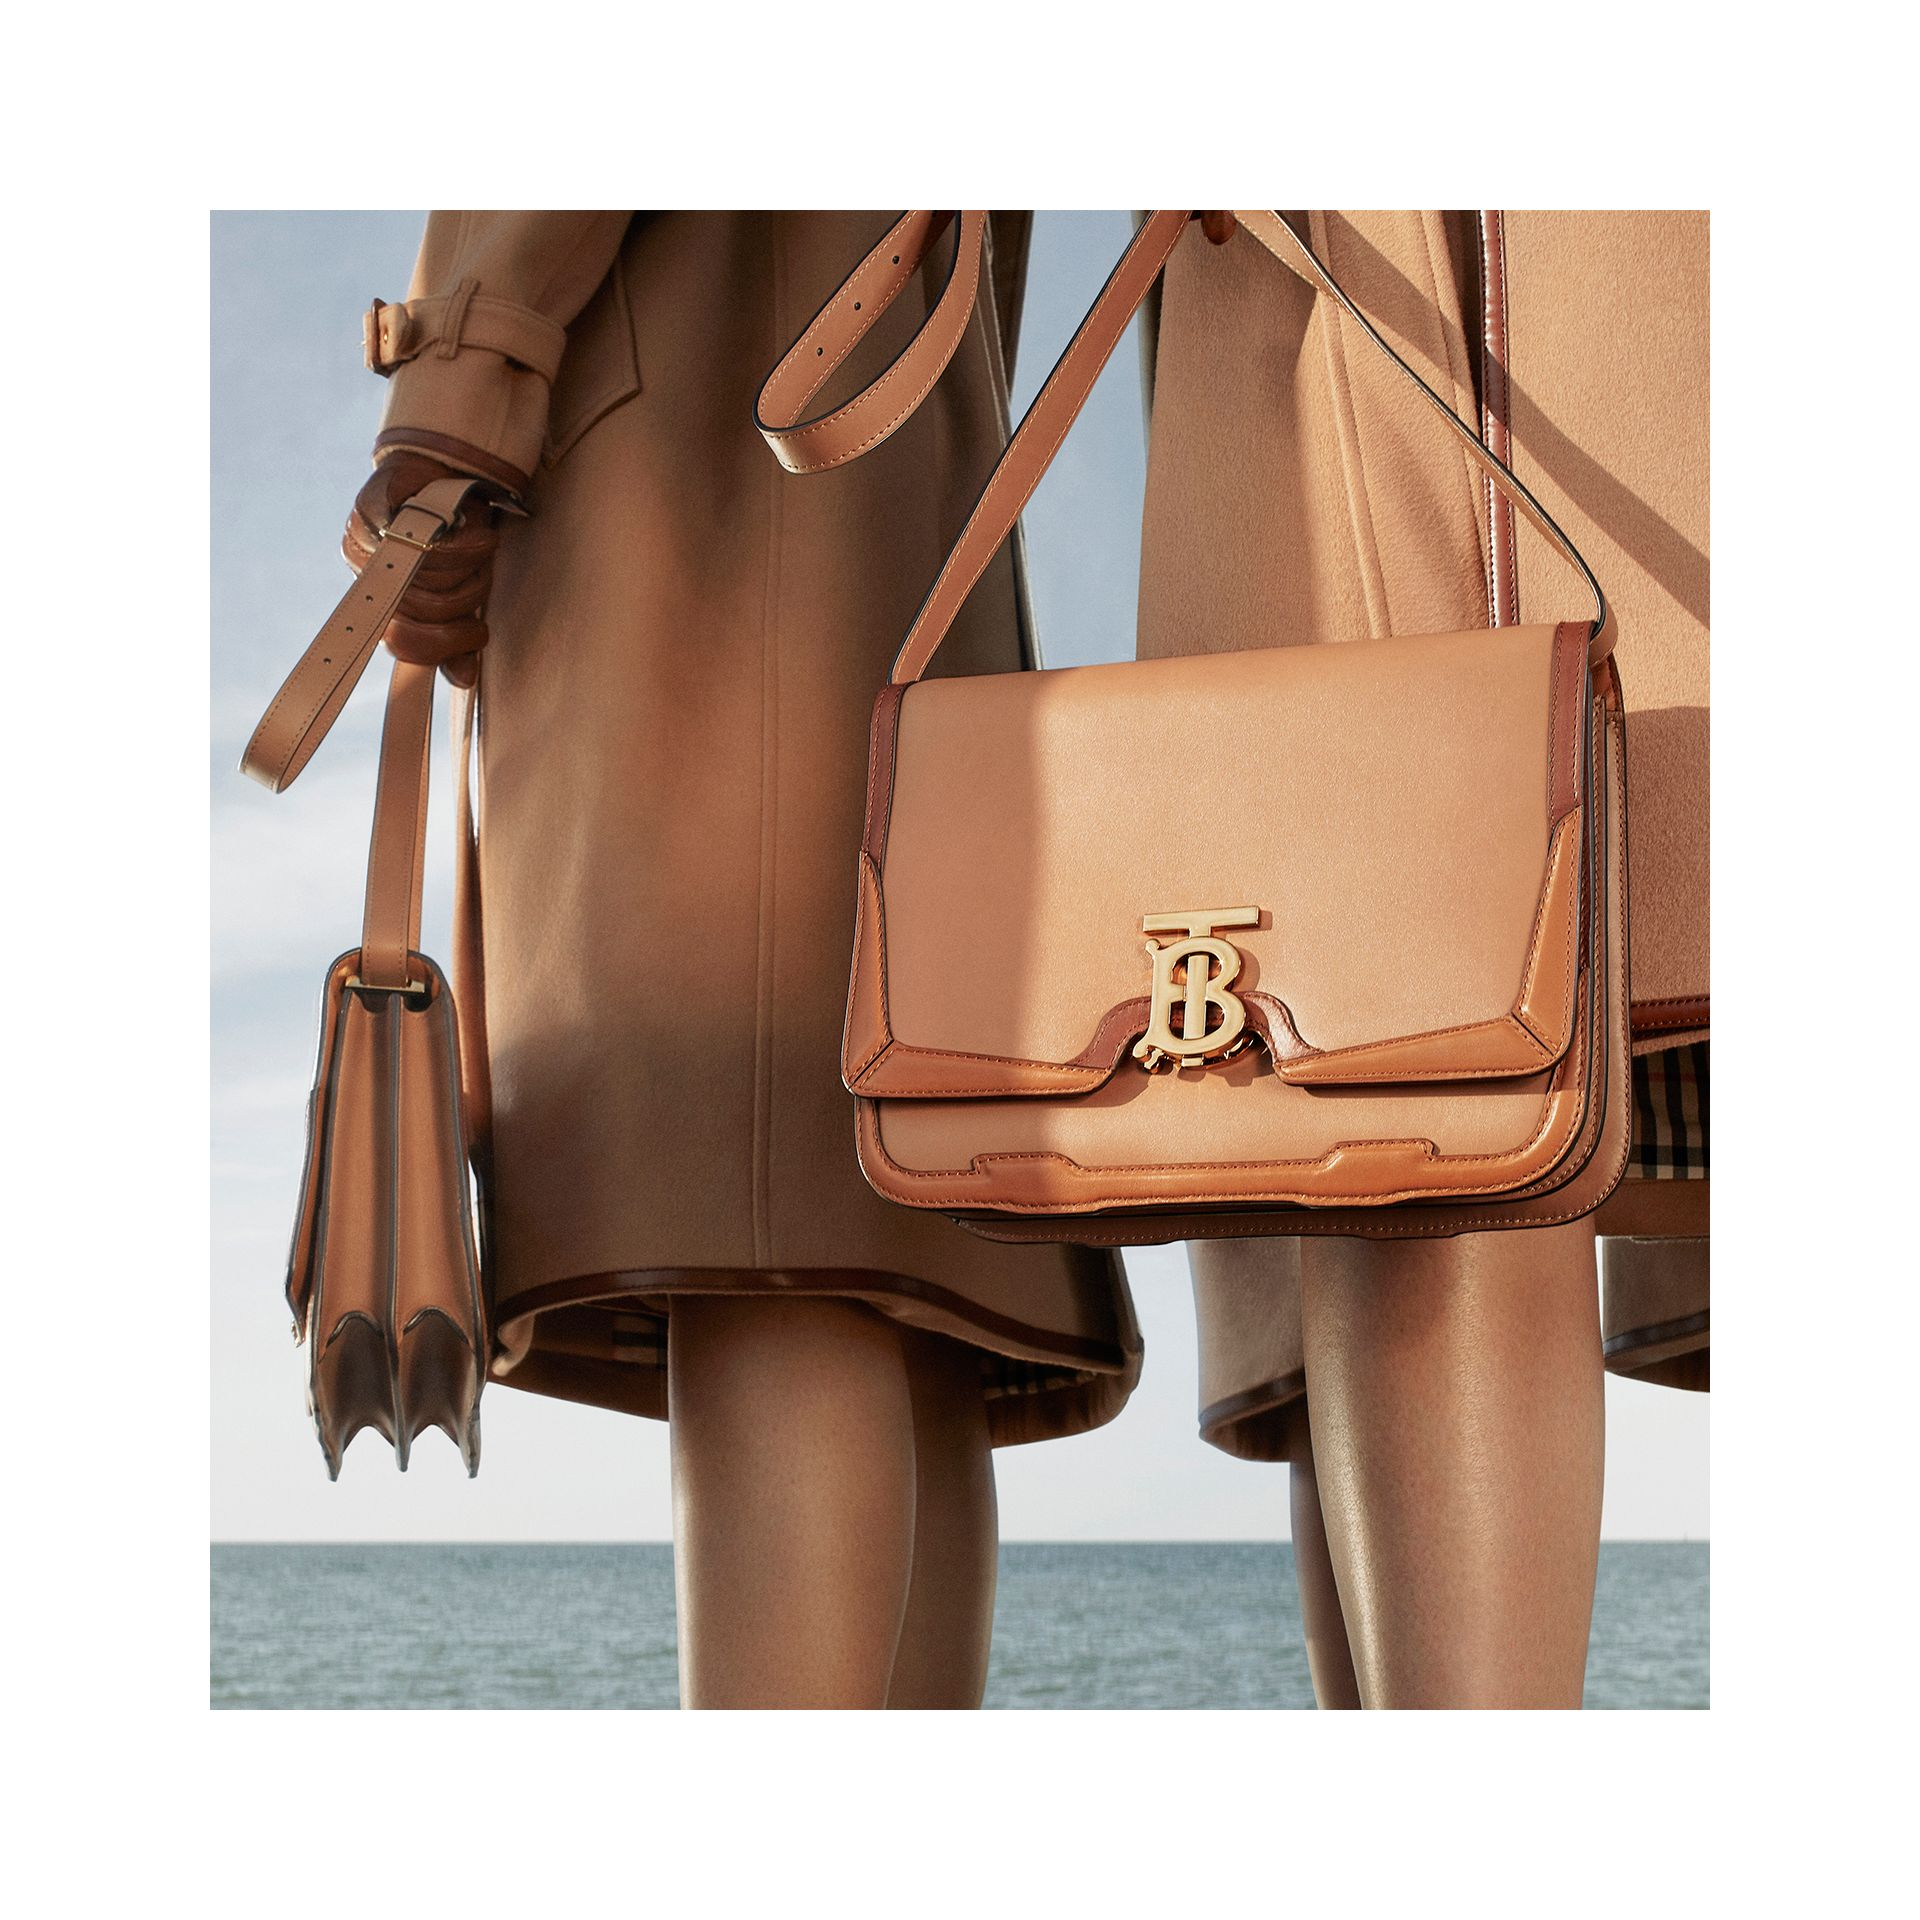 Medium Appliqué Leather TB Bag in Warm Camel - Women | Burberry - gallery image 6